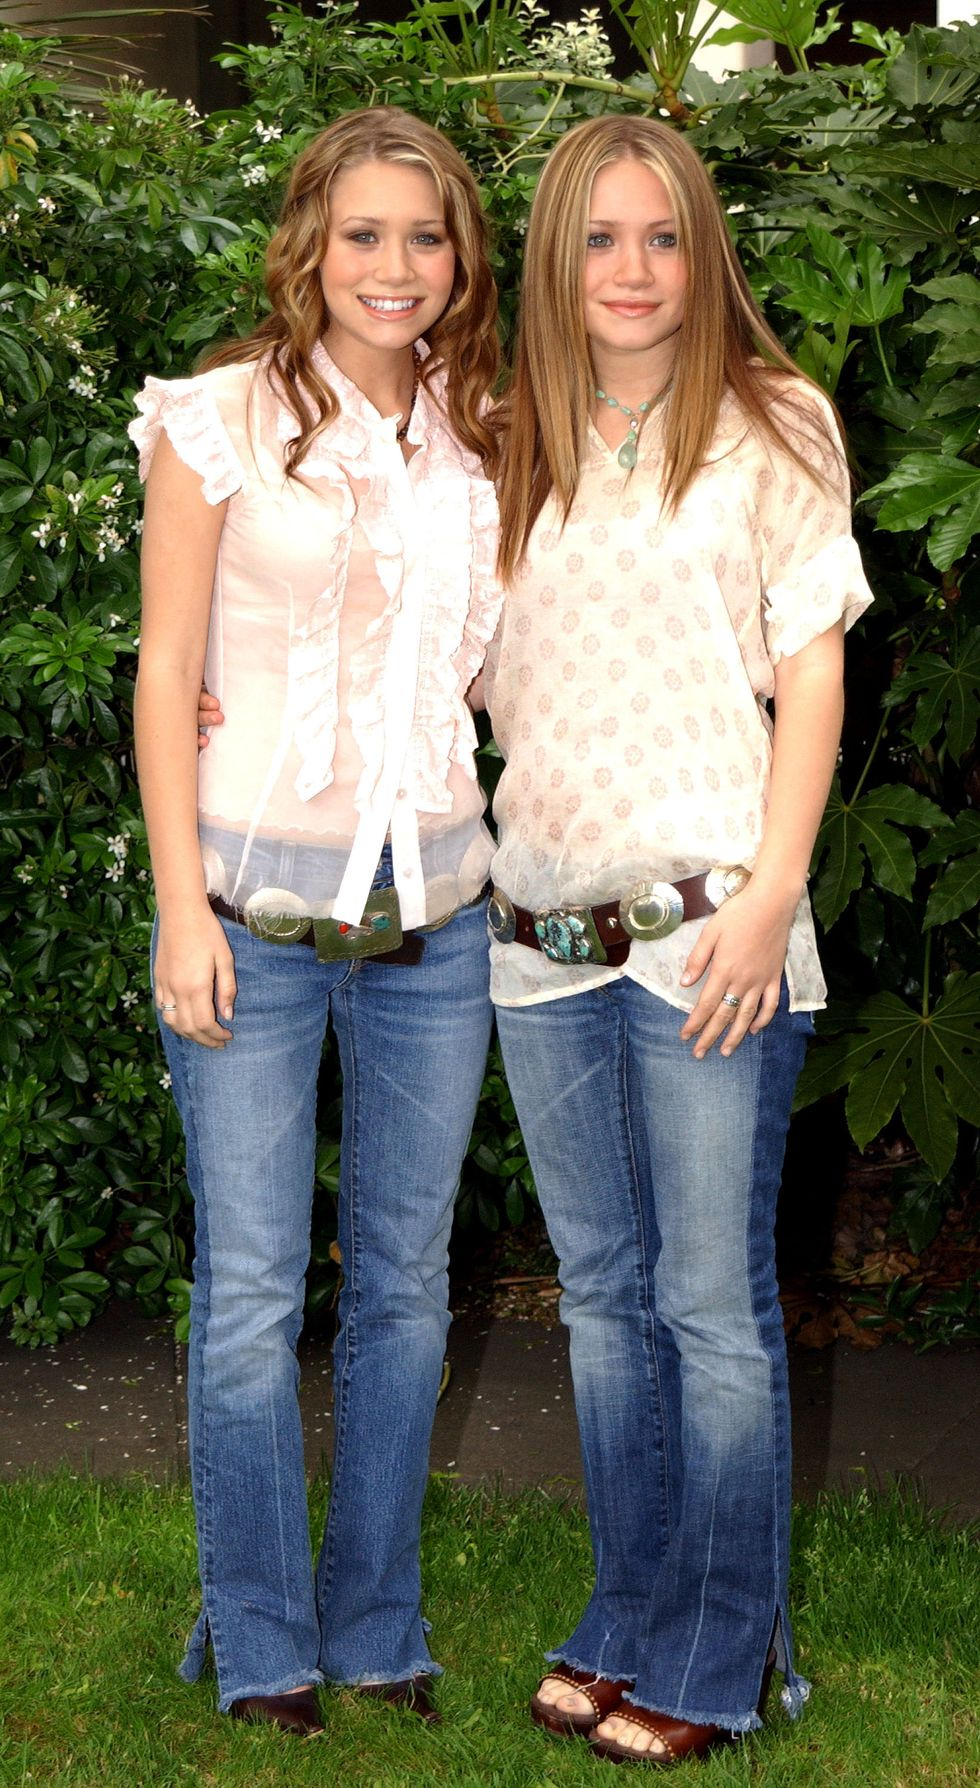 May 8, 2002 While presenting funds to a charity in London, the twins both wore cream colored tops with a chunky belt and flared blue jeans.